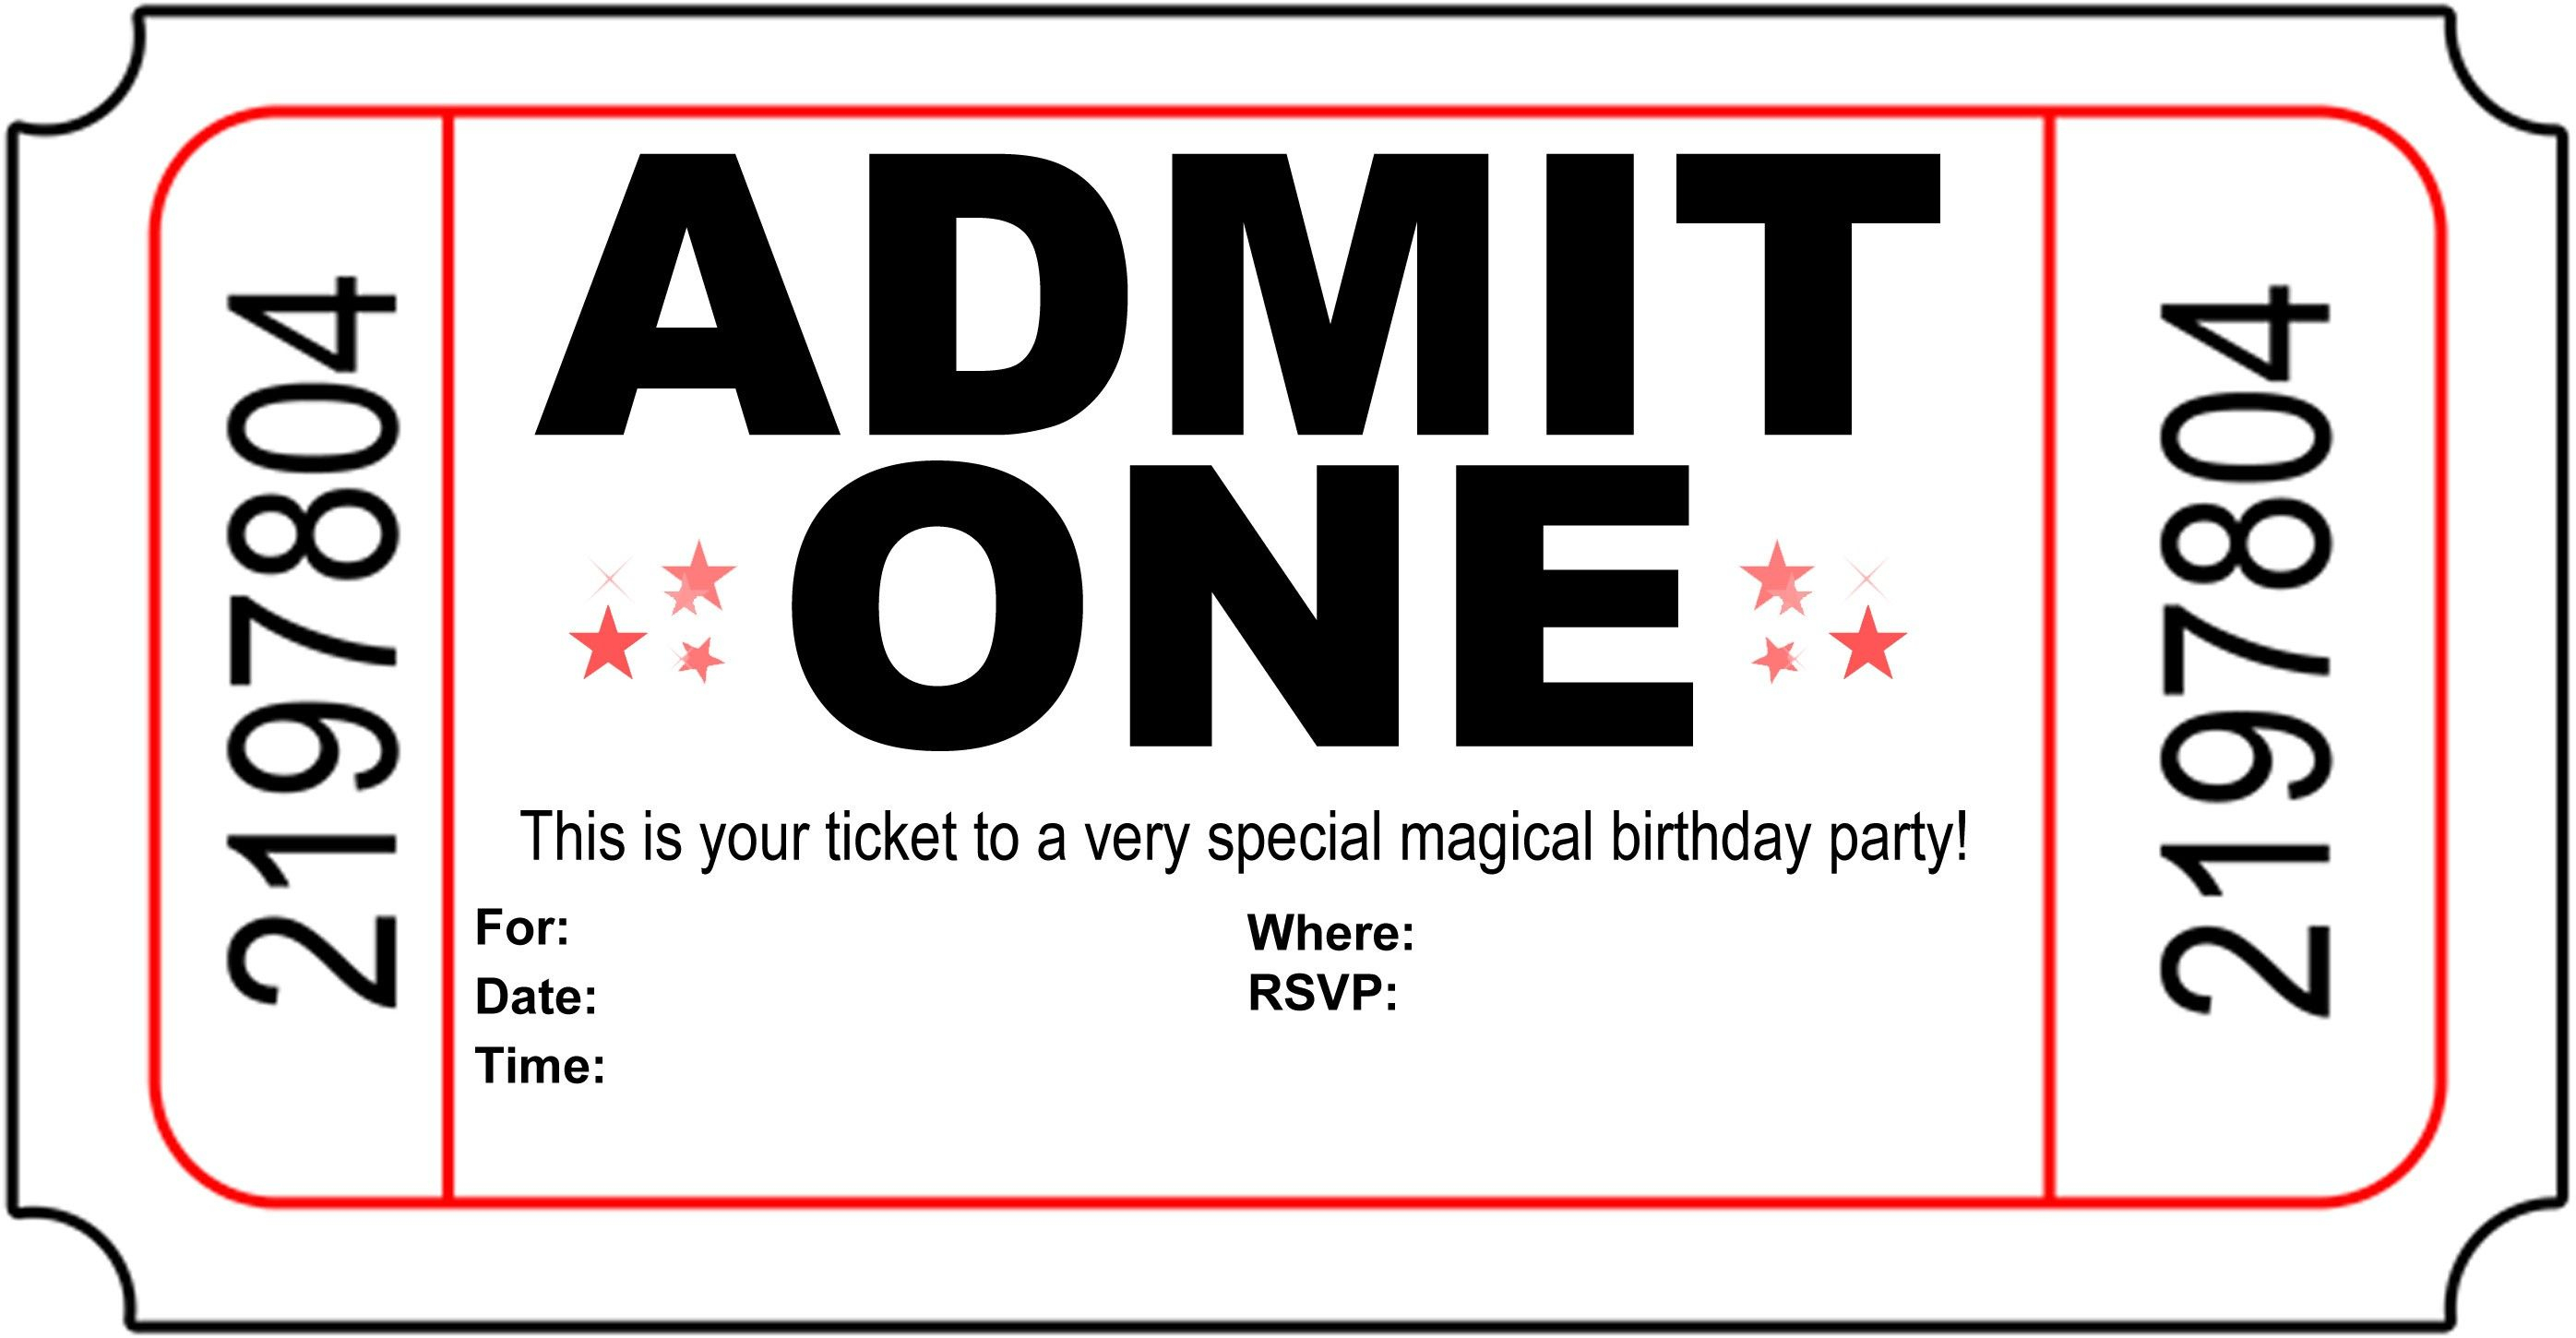 Birthday Party Invitation Free Printable | Printshop. | Pinterest - Free Printable Movie Ticket Birthday Party Invitations